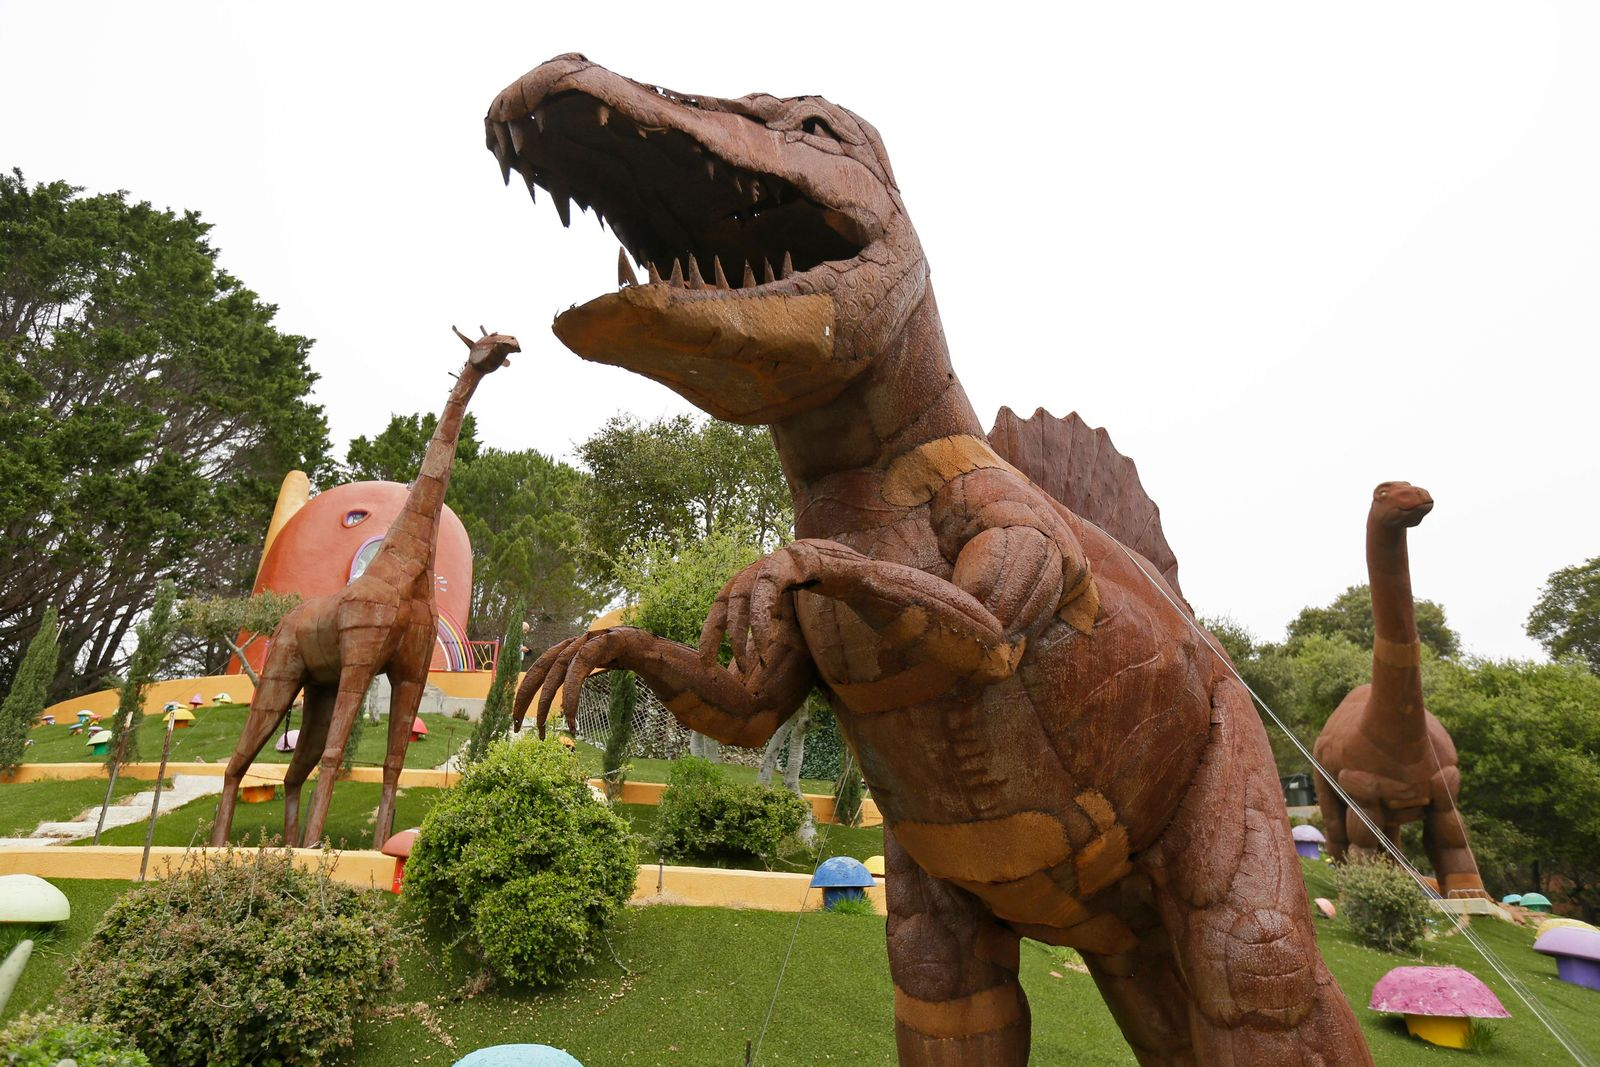 In this photo taken Monday, April 1, 2019, dinosaurs and other figurines stand in the backyard of the Flintstone House in Hillsborough, Calif. The San Francisco Bay Area suburb of Hillsborough is suing the owner of the house, saying that she installed dangerous steps, dinosaurs and other Flintstone-era figurines without necessary permits. The owner and her attorney say they will fight for the rights of property owners and Fred and Barney fans everywhere. (AP Photo/Eric Risberg)